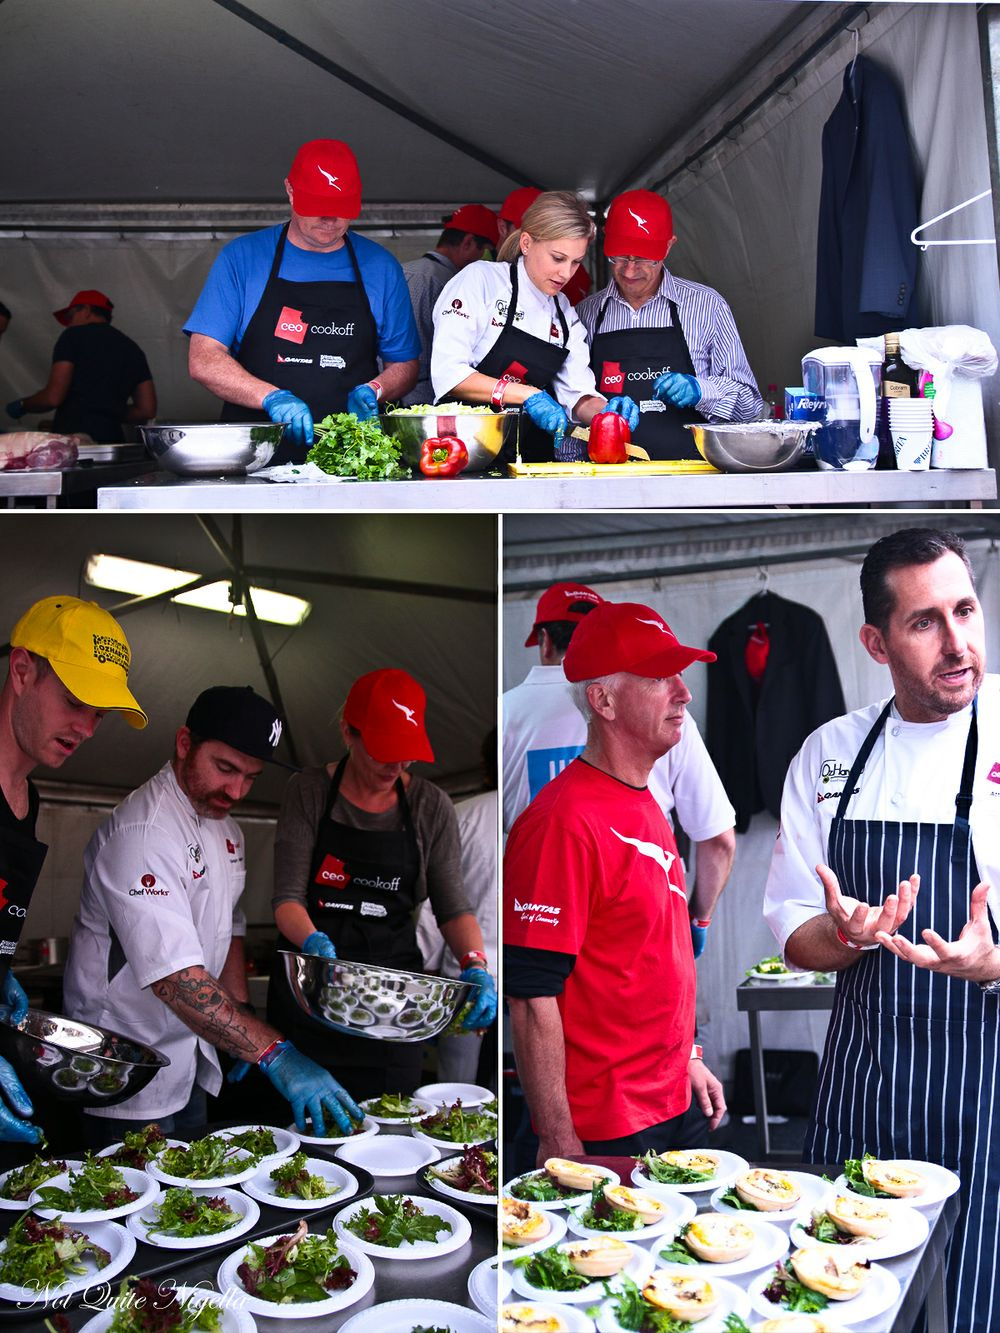 ceo-cook-off-1-2